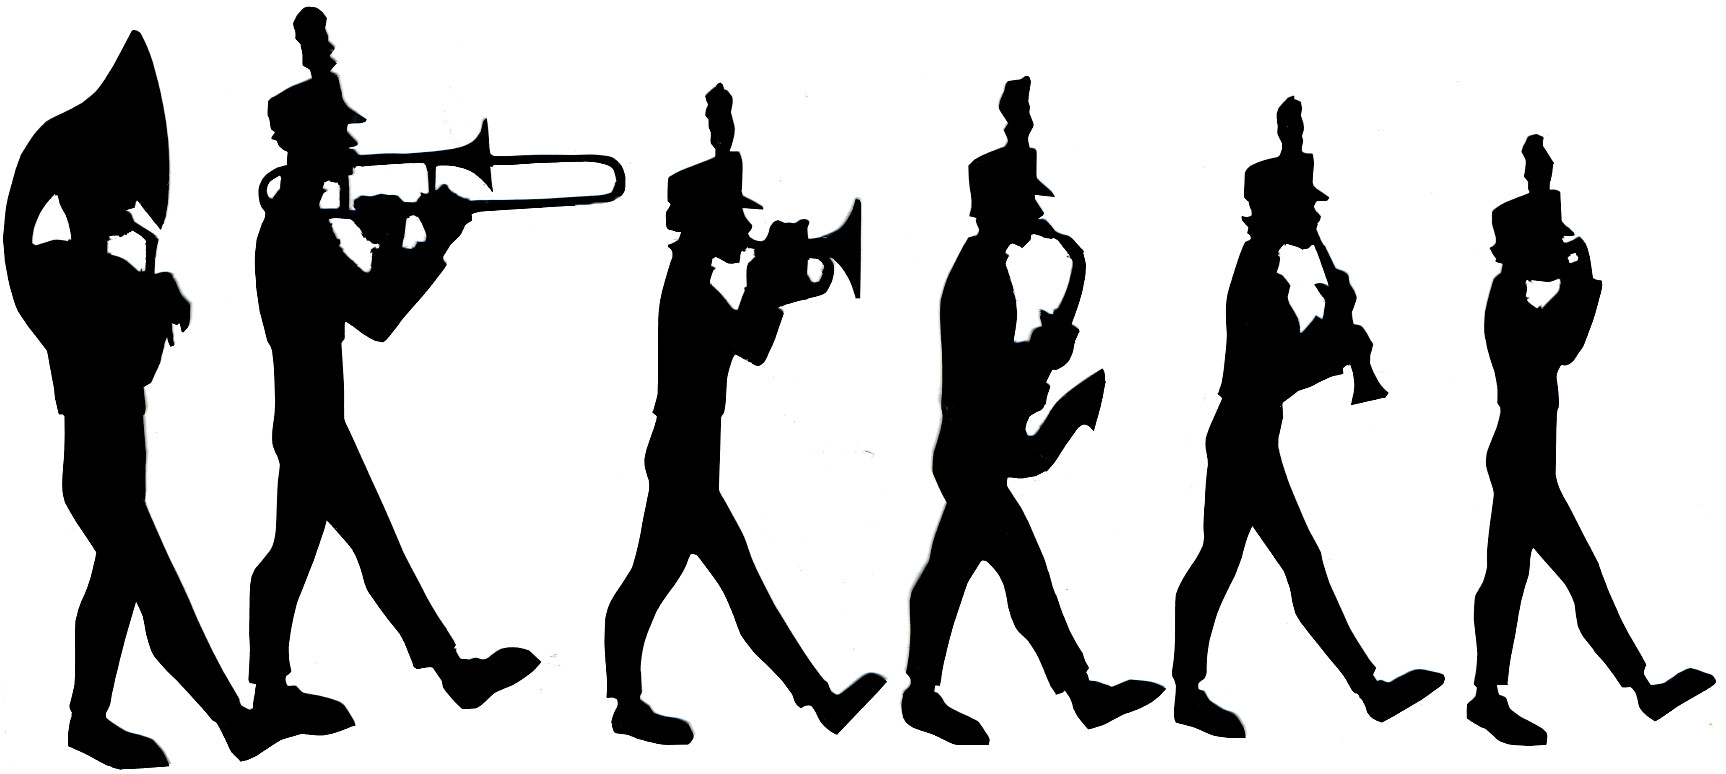 Trombone clipart marching band instrument. Cartoon of a player